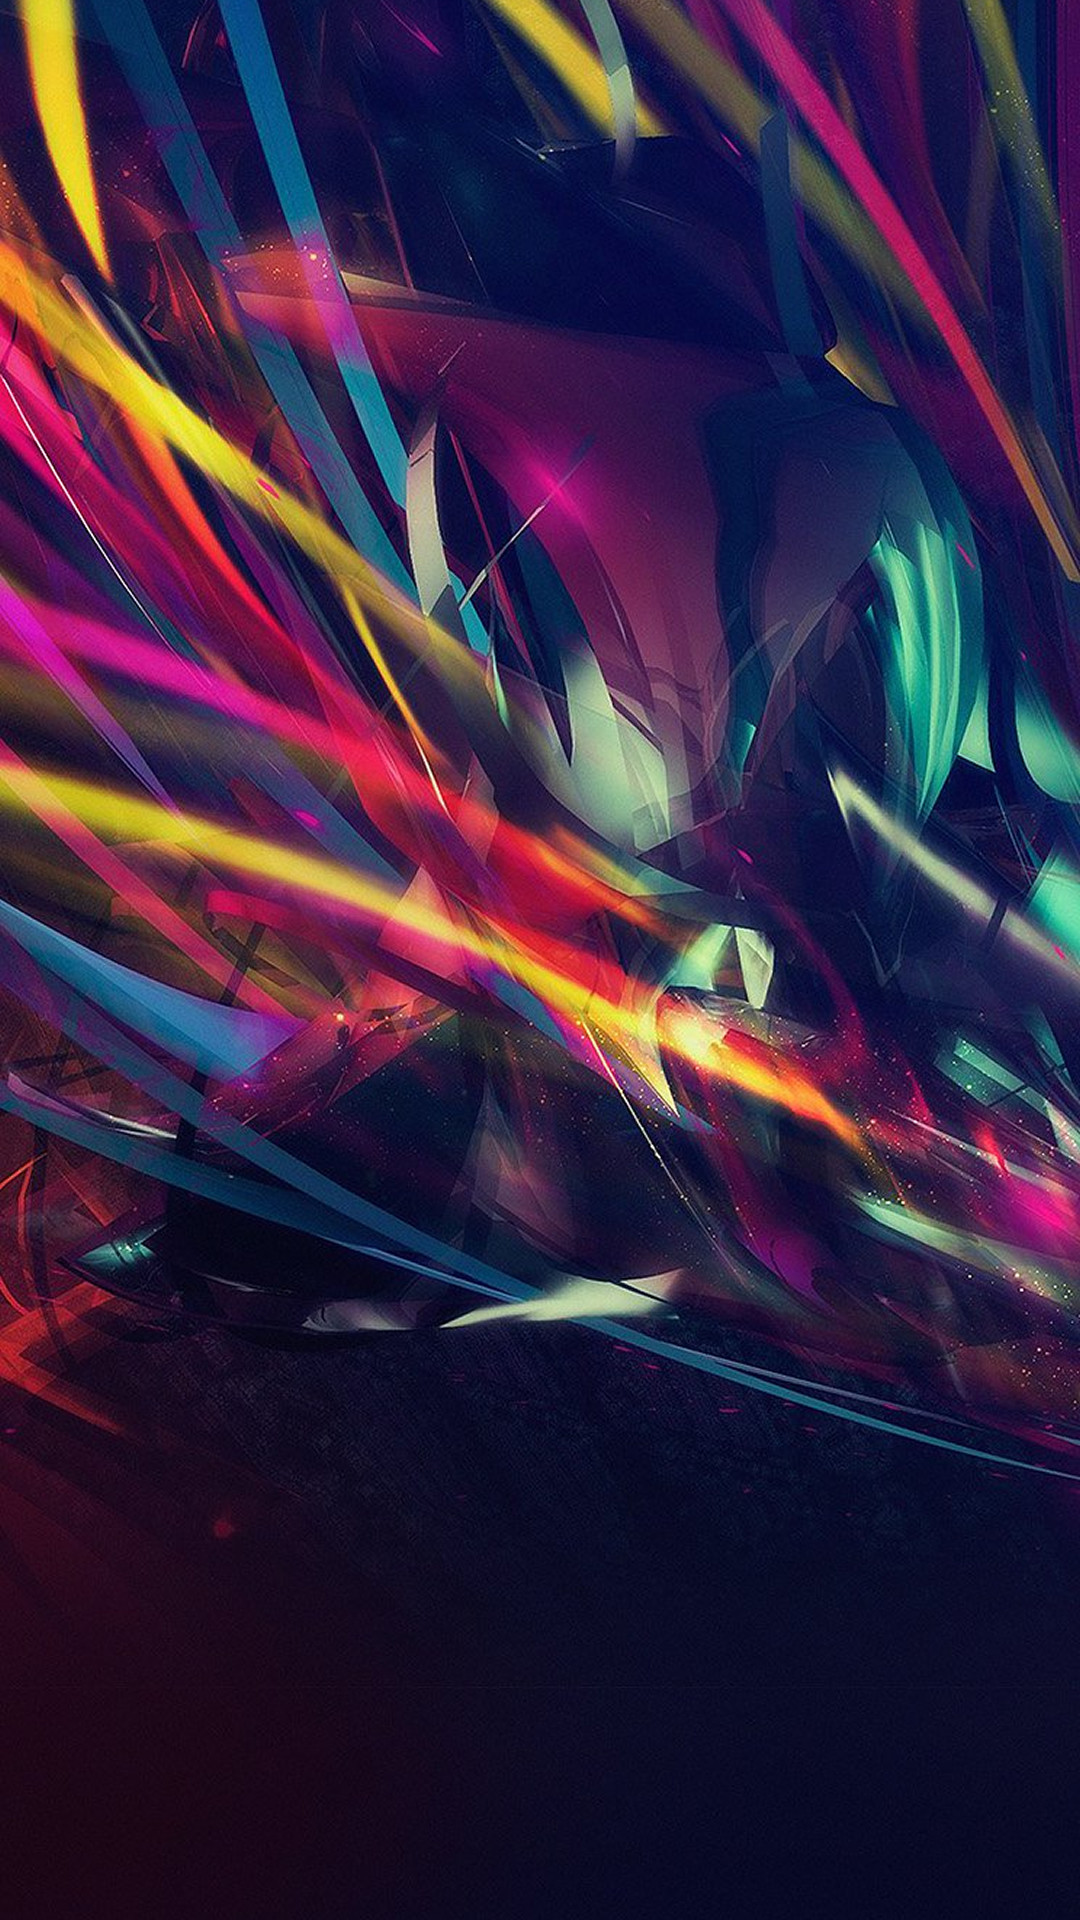 Abstract Wallpaper Phone 74 Images